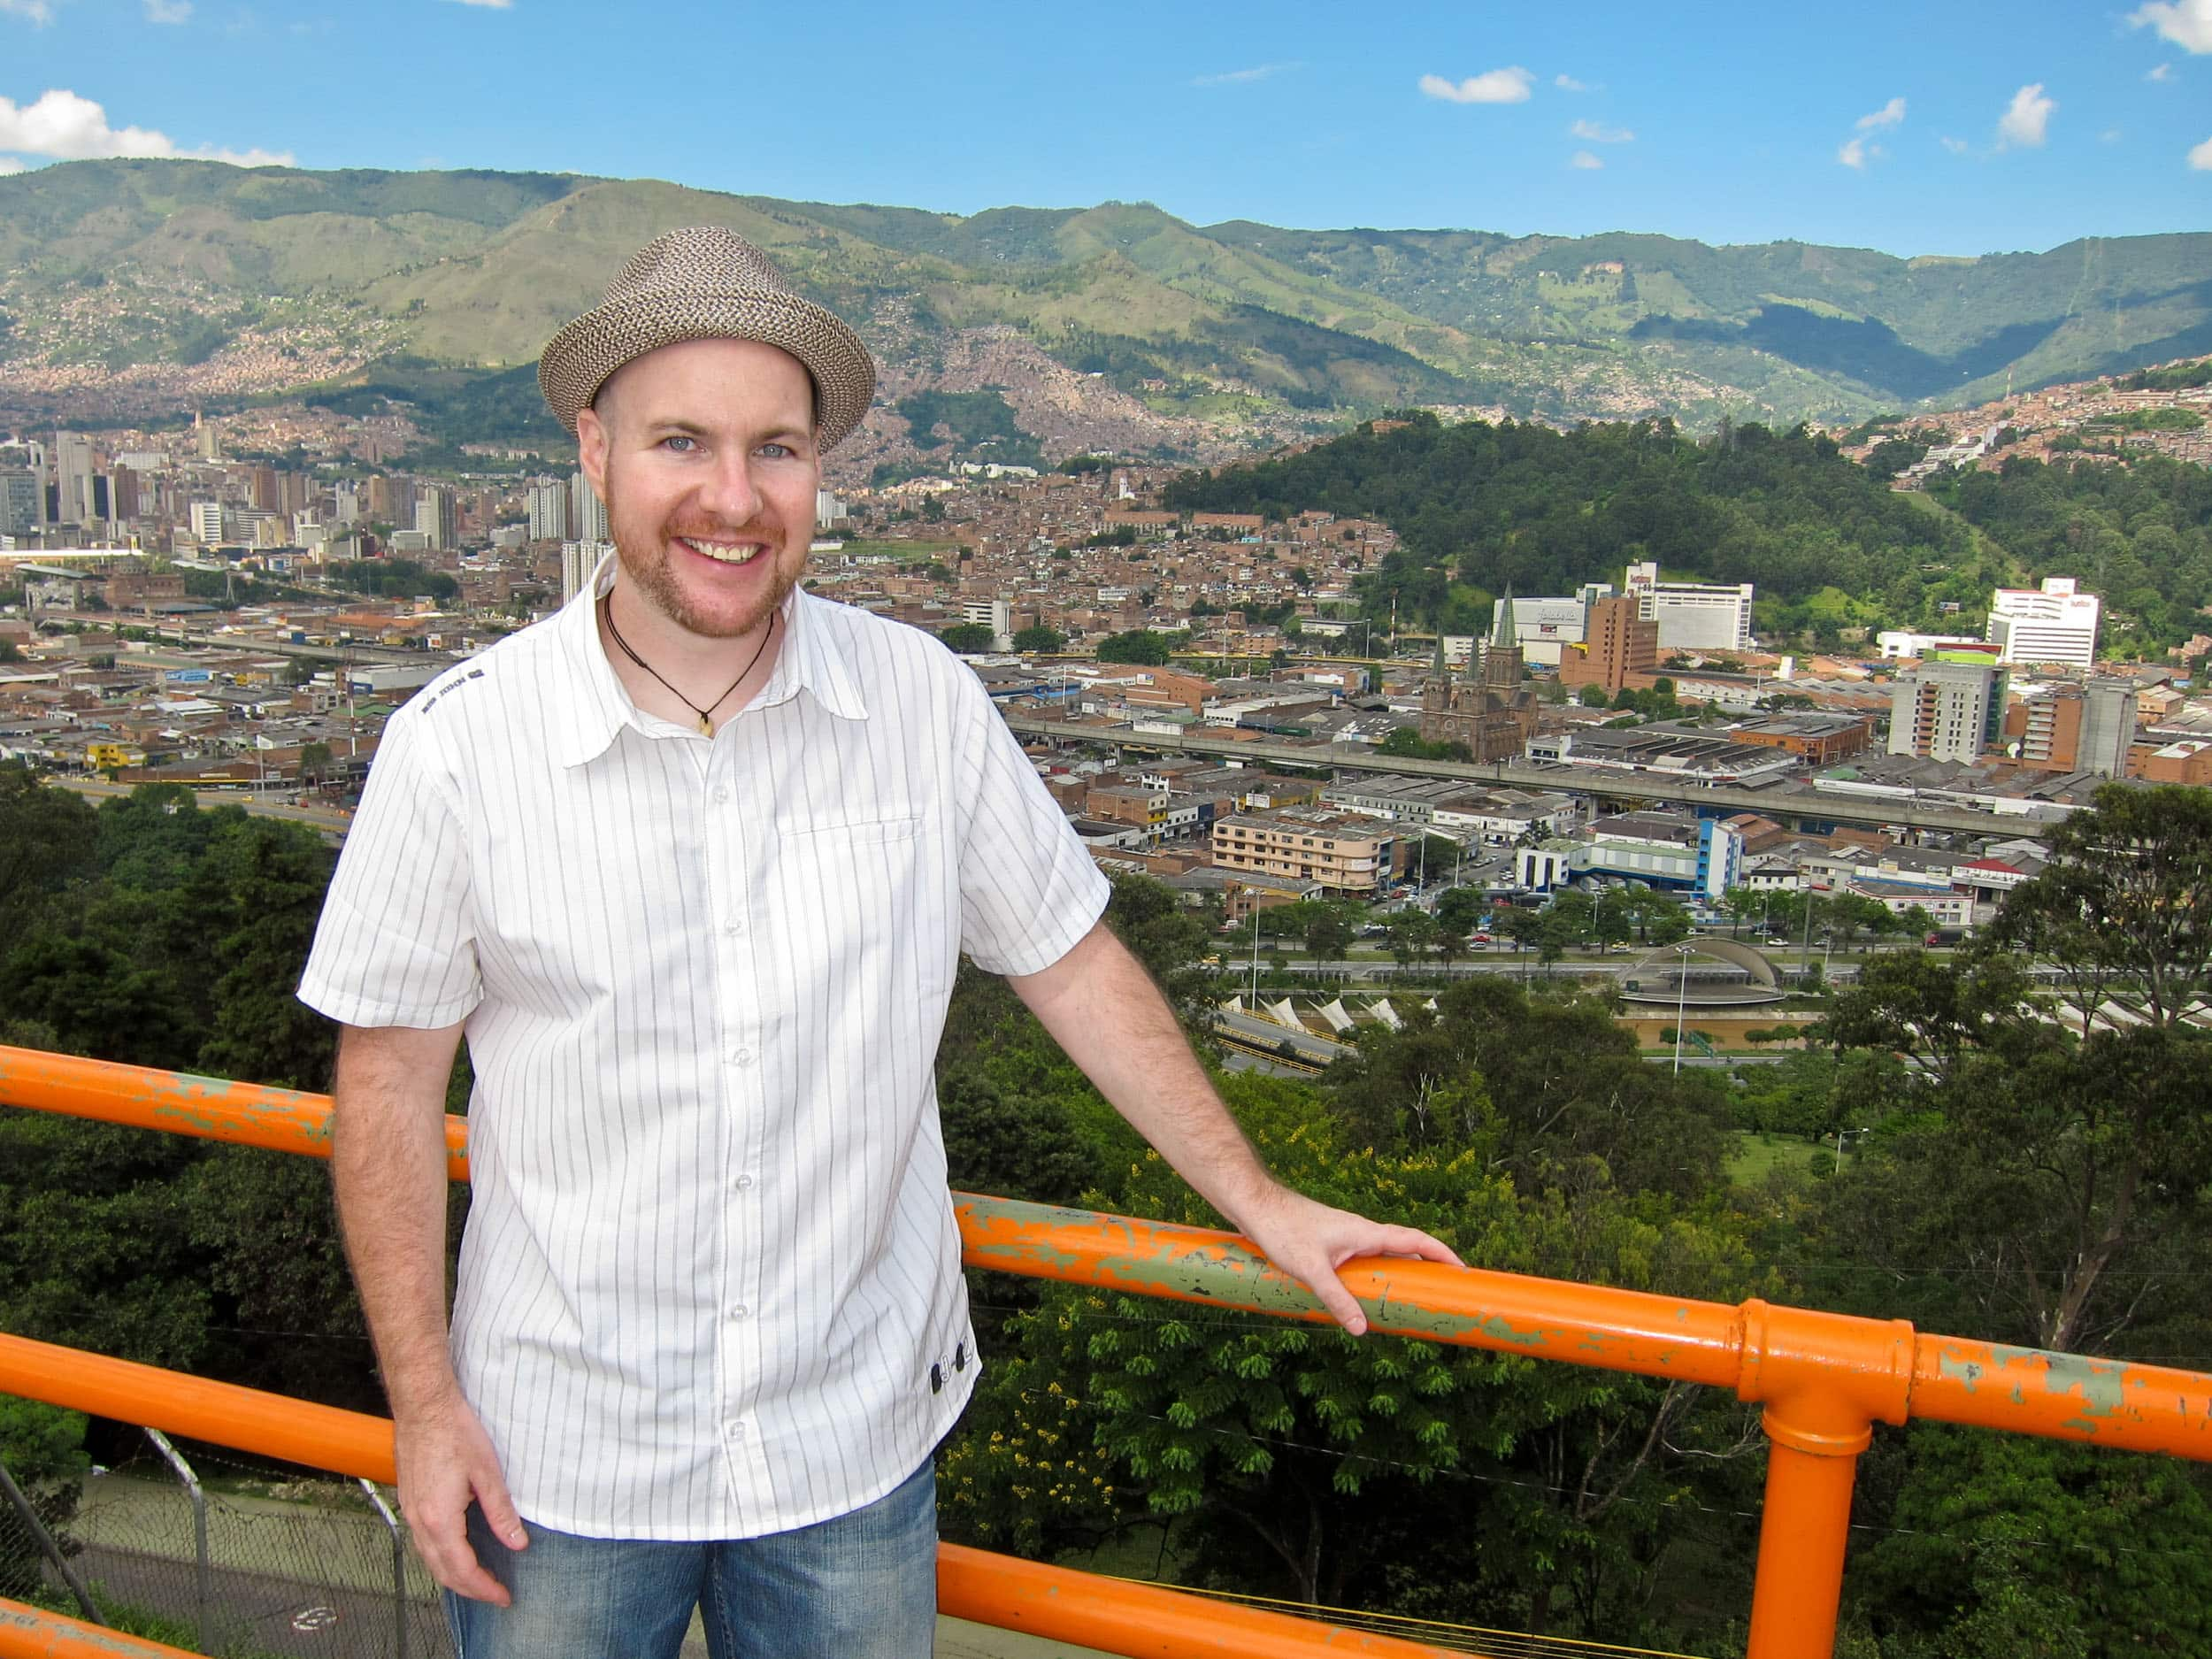 Medellin, Colombia (August 2010)